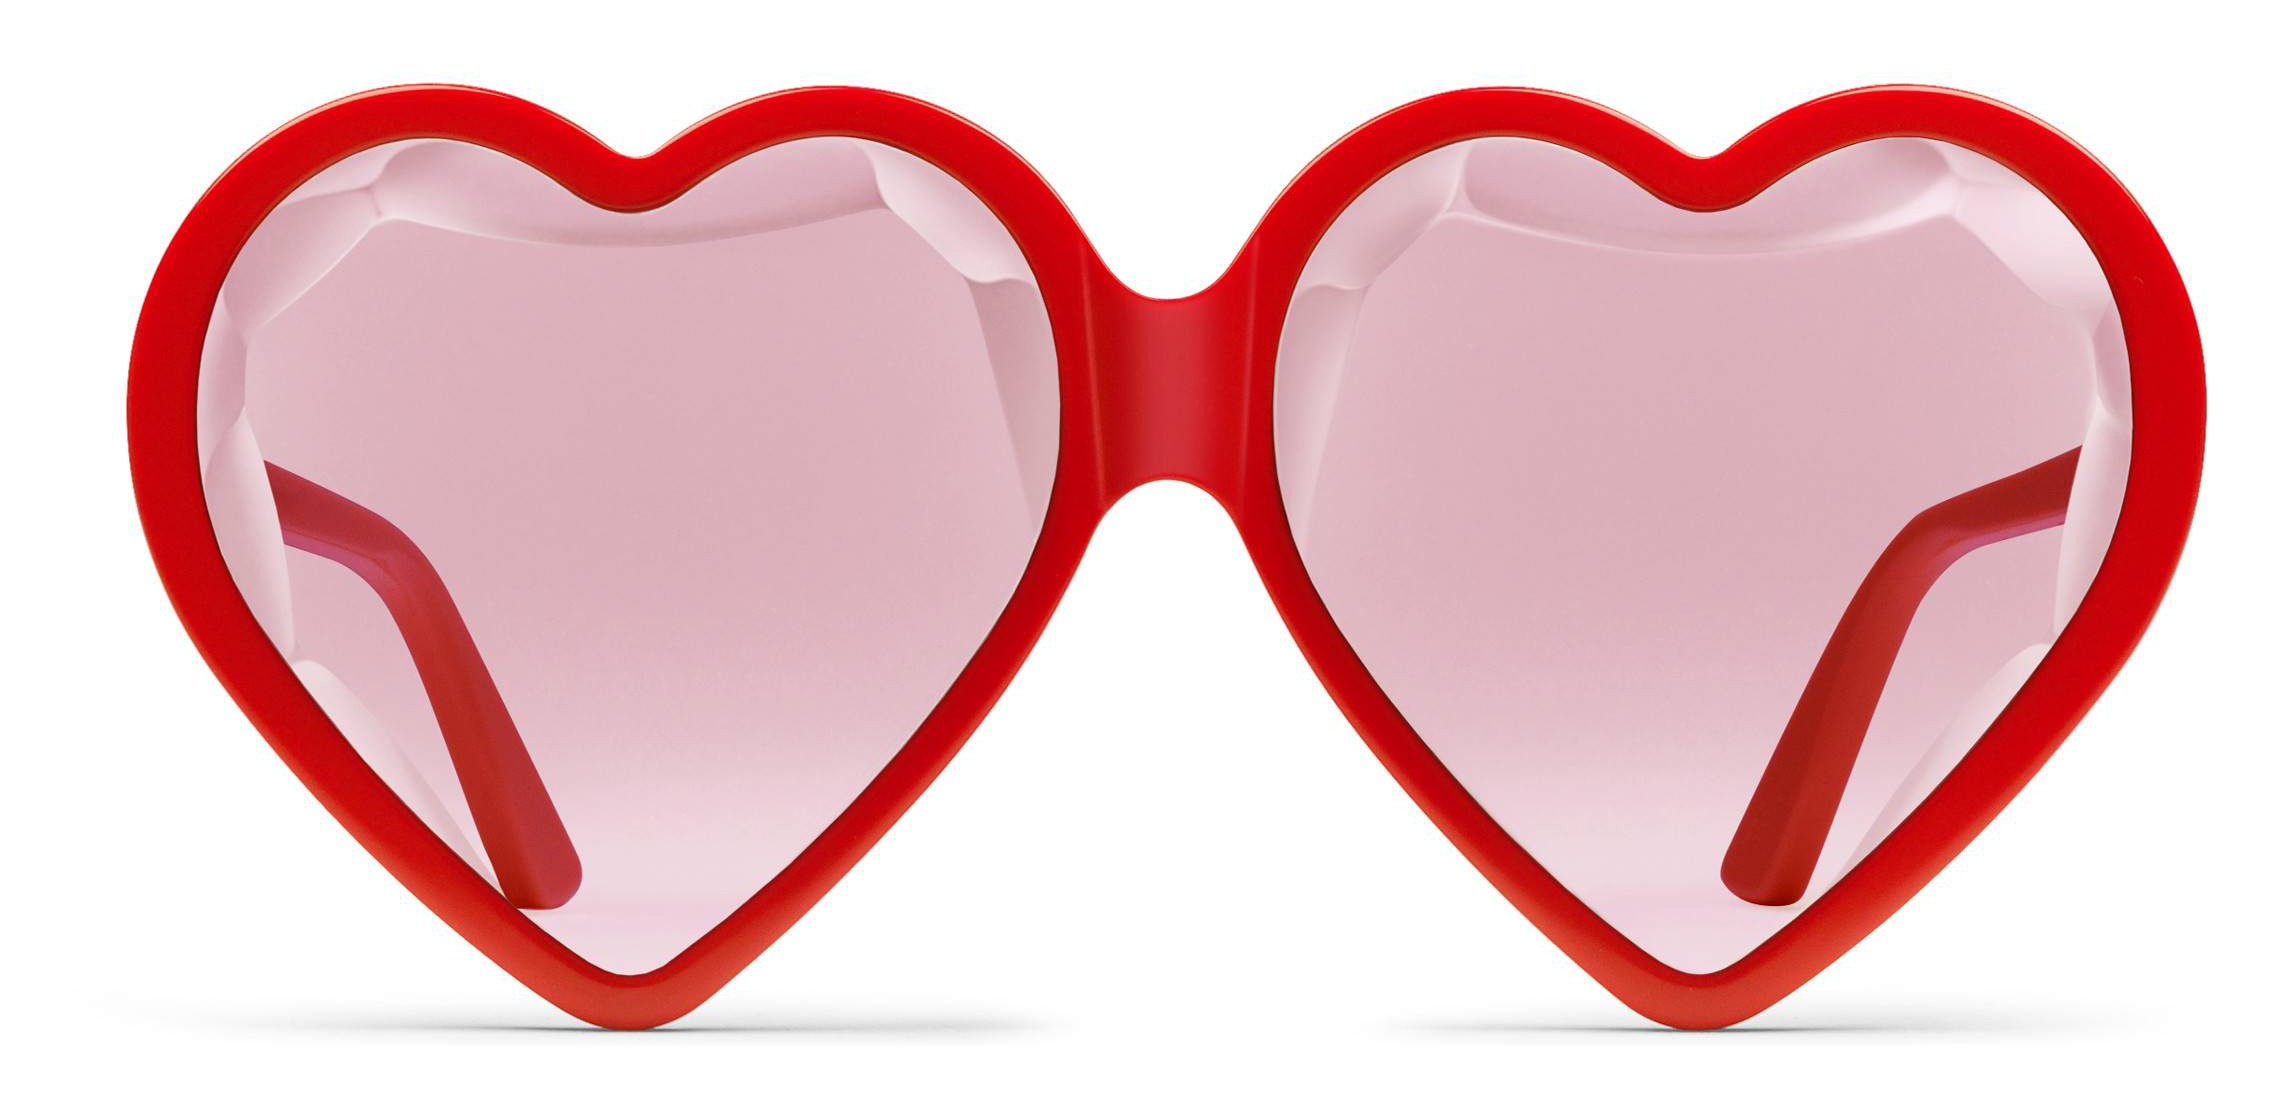 Free Funny Sunglasses Cliparts, Download Free Clip Art, Free Clip Art on  Clipart Library